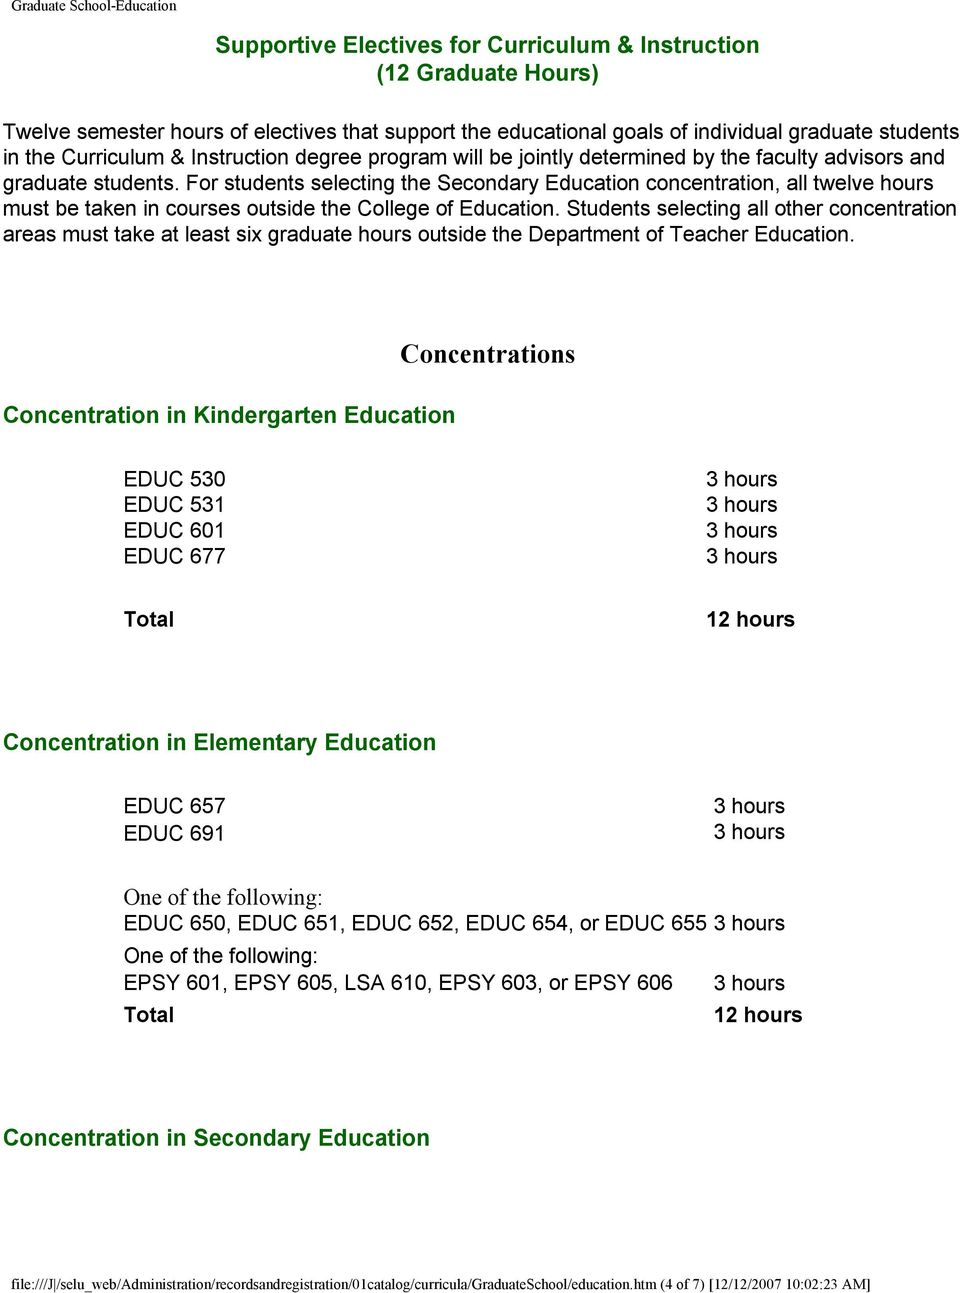 For students selecting the Secondary Education concentration, all twelve hours must be taken in courses outside the College of Education.